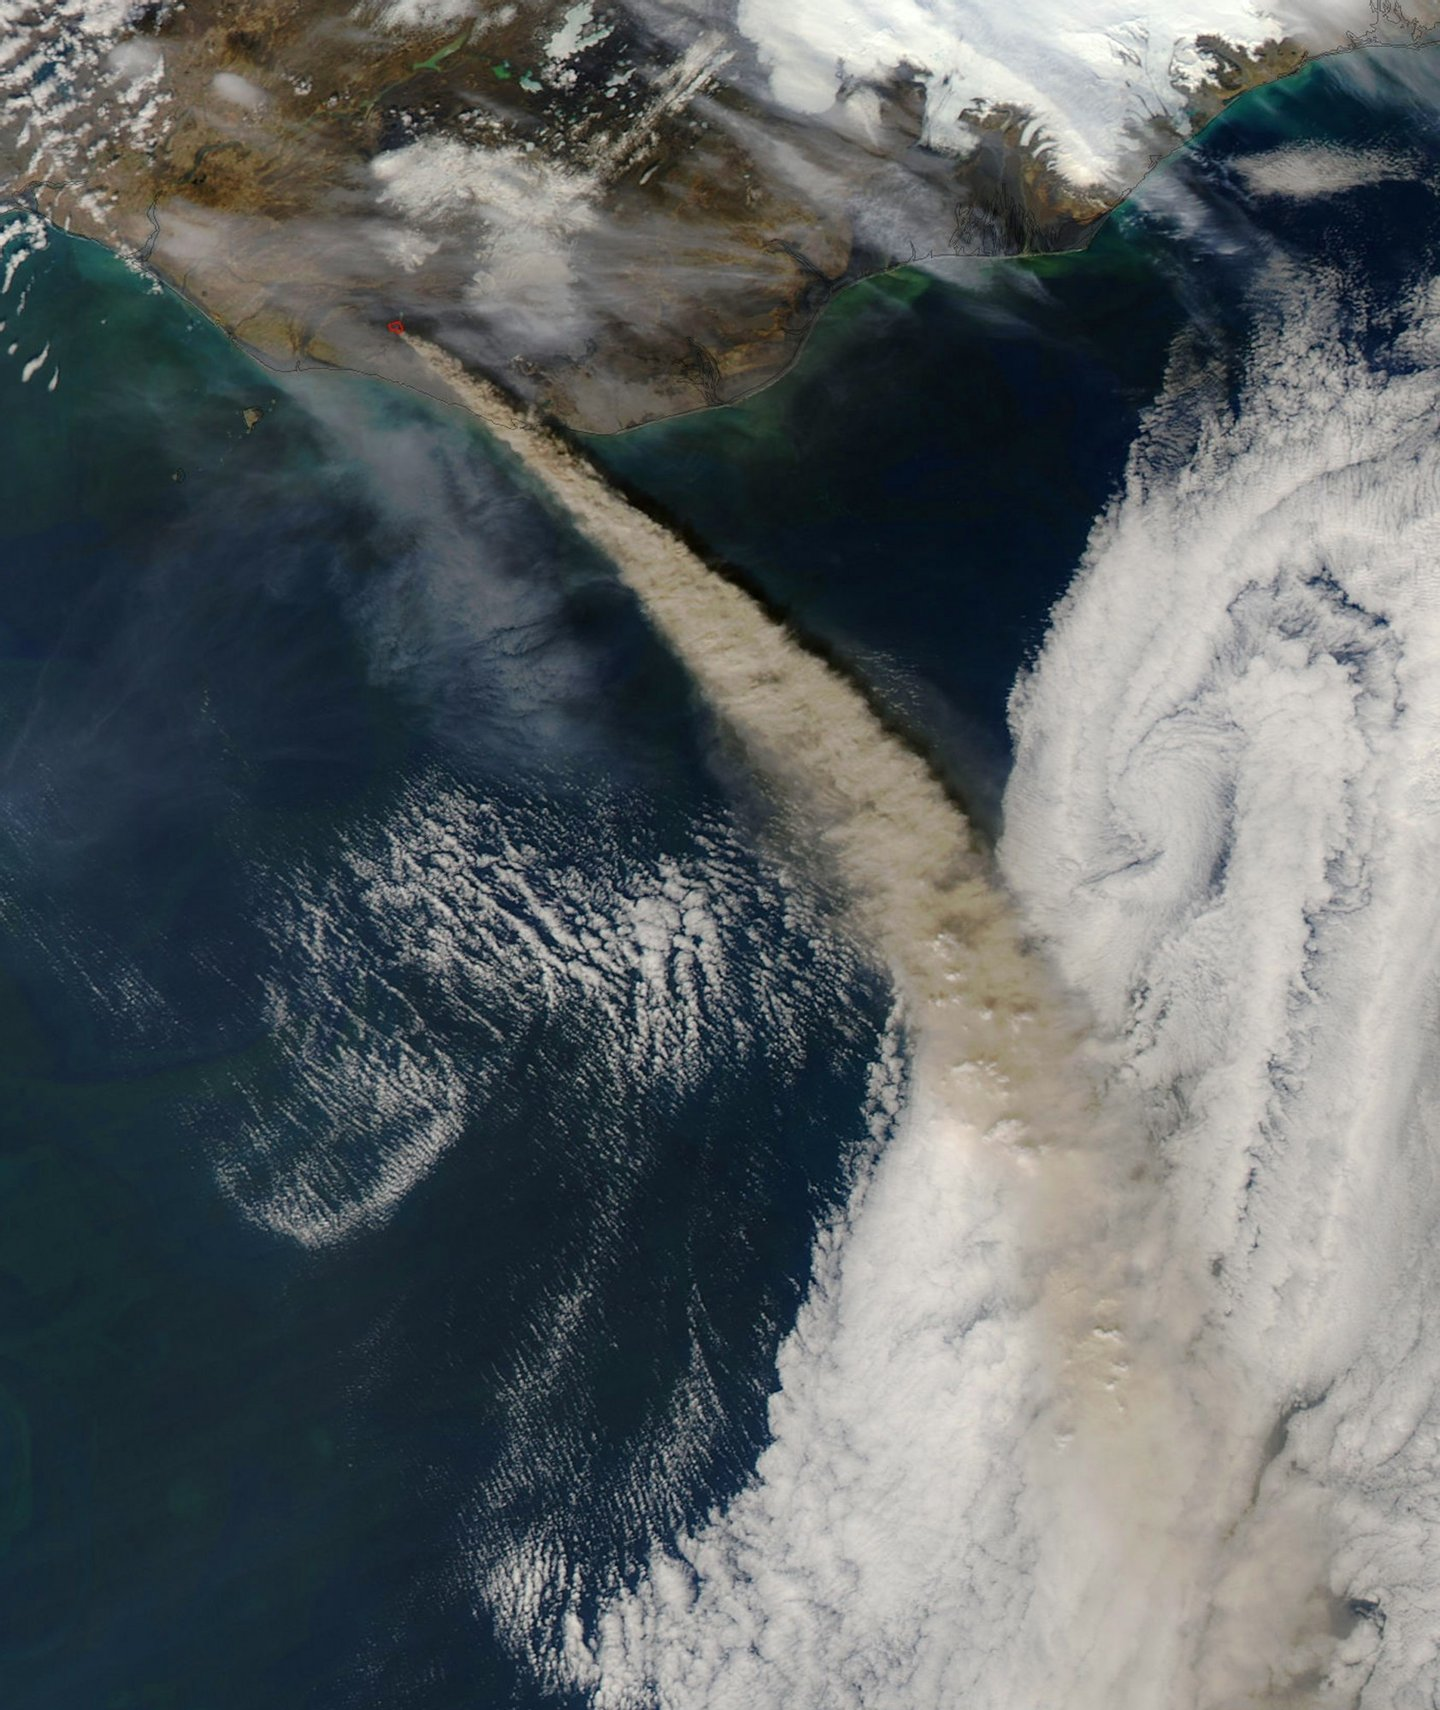 This handout picture captured by NASA?s Moderate Resolution Imaging Spectroradiometer (MODIS) on board the Aqua satellite on May 8, 2010 shows Iceland?s Eyjafjallajokull volcano continuing to emit a dense plume of ash and steam. Iceland's Eyjafjoell volcano threatened European skies with a new ash cloud Friday raising the risk of more flight cancellations, officials said. AFP / NASA MODIS - RESTRICTED TO EDITORIAL USE (Photo credit should read NASA MODIS/AFP/Getty Images)